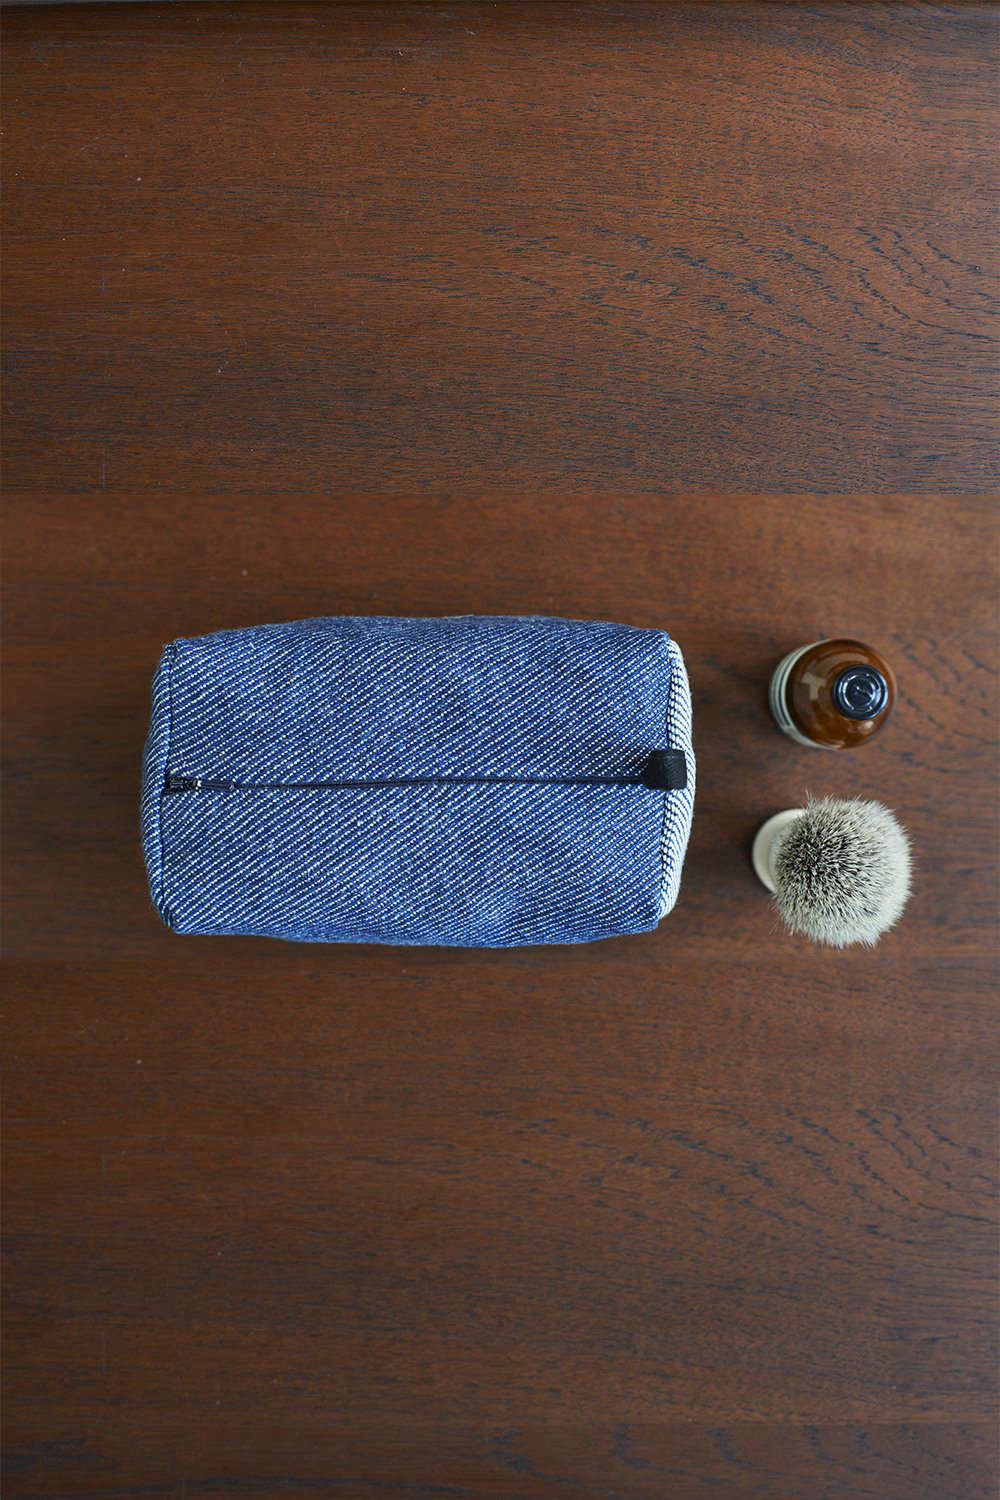 The collection also includes travel bags, including this Indigo Cotton Oblong Wash Bag; £37 ($47.80).